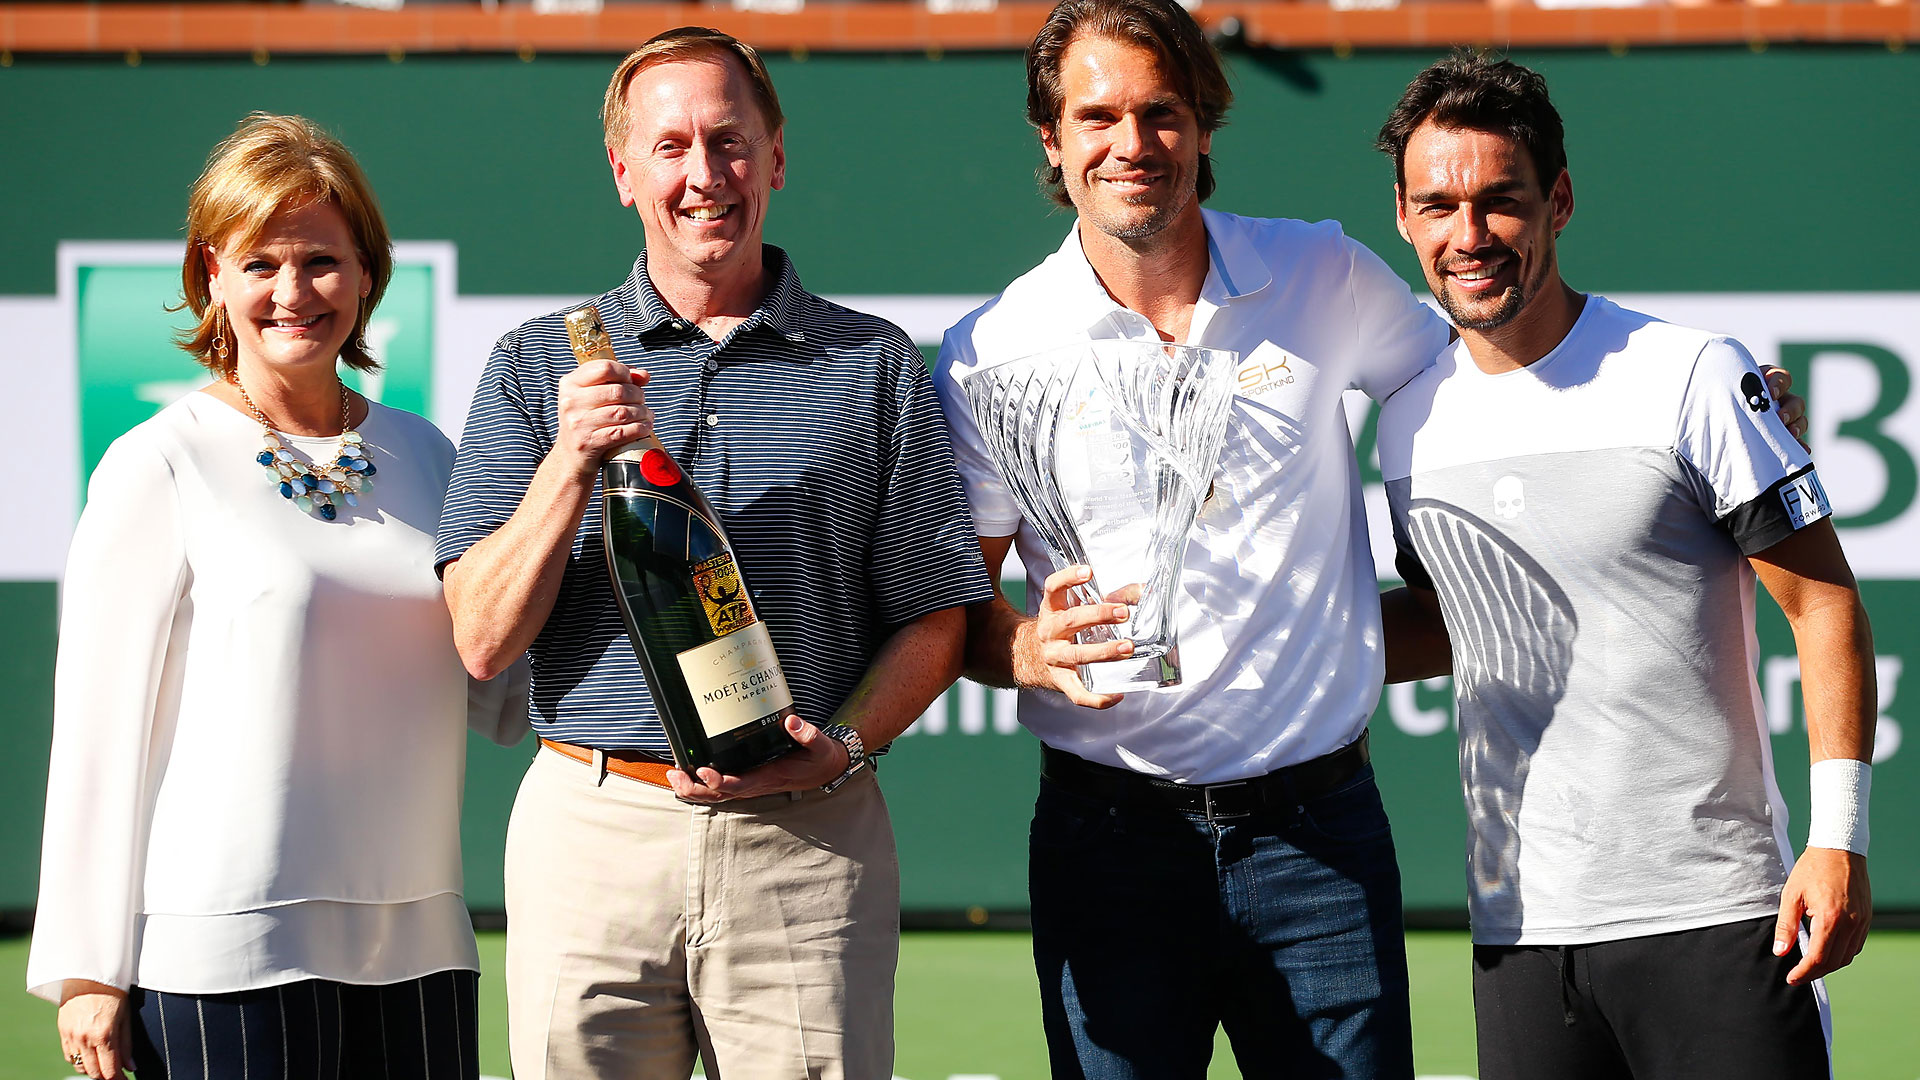 BNP Paribas Open Award